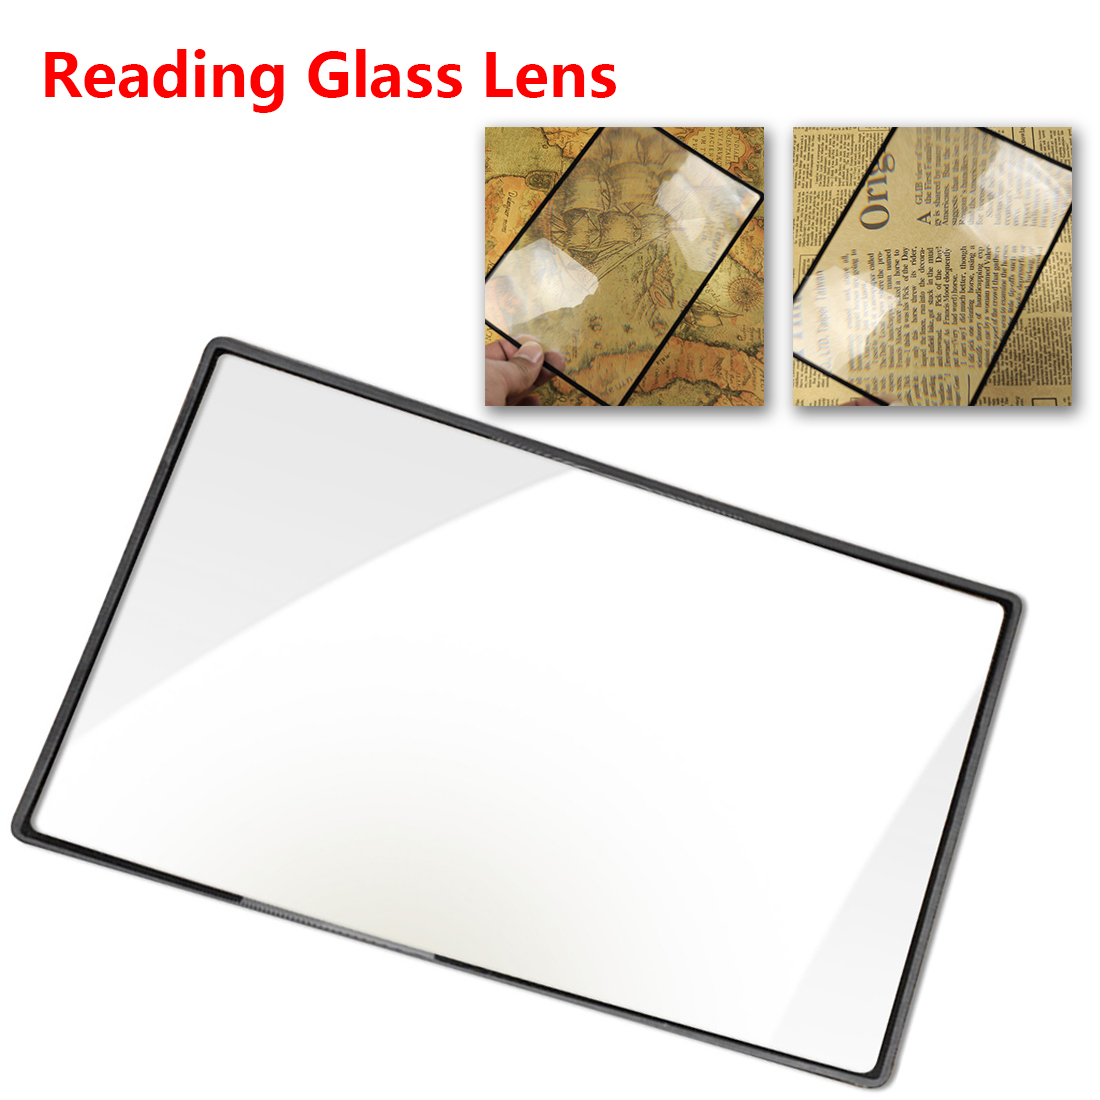 Magnifying Reading Glass Lens 180X120mm Convinient A5 Flat PVC Magnifier Sheet X3 Book Page Magnification 3x large reading magnifier big a4 full page sheet magnifying glass book reading lens page reading glass lens magnification